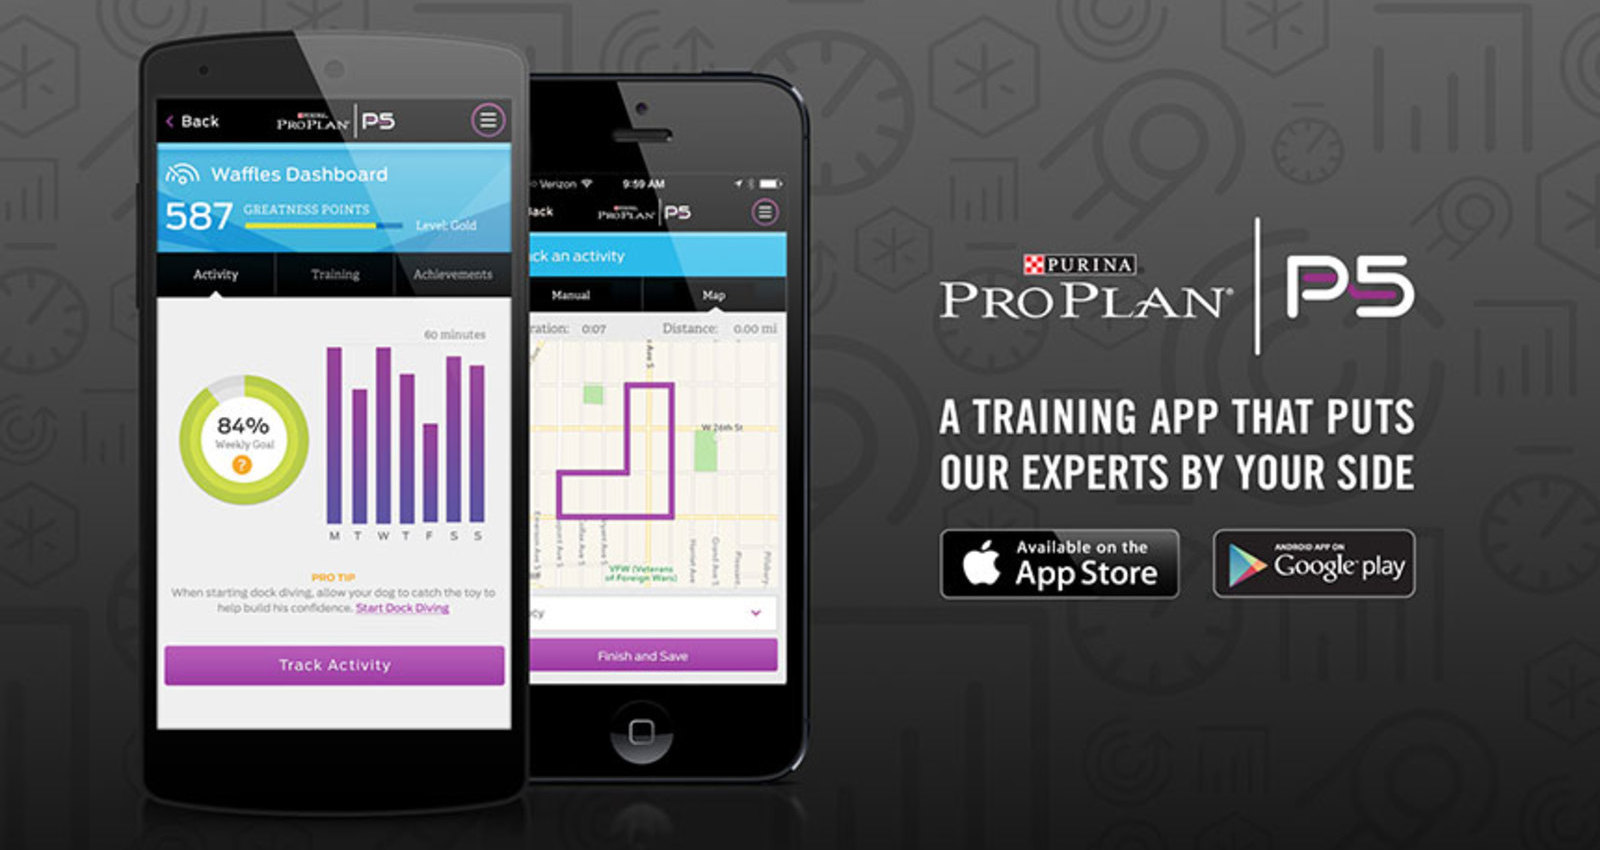 Purina Pro Plan P5 Dog Training App